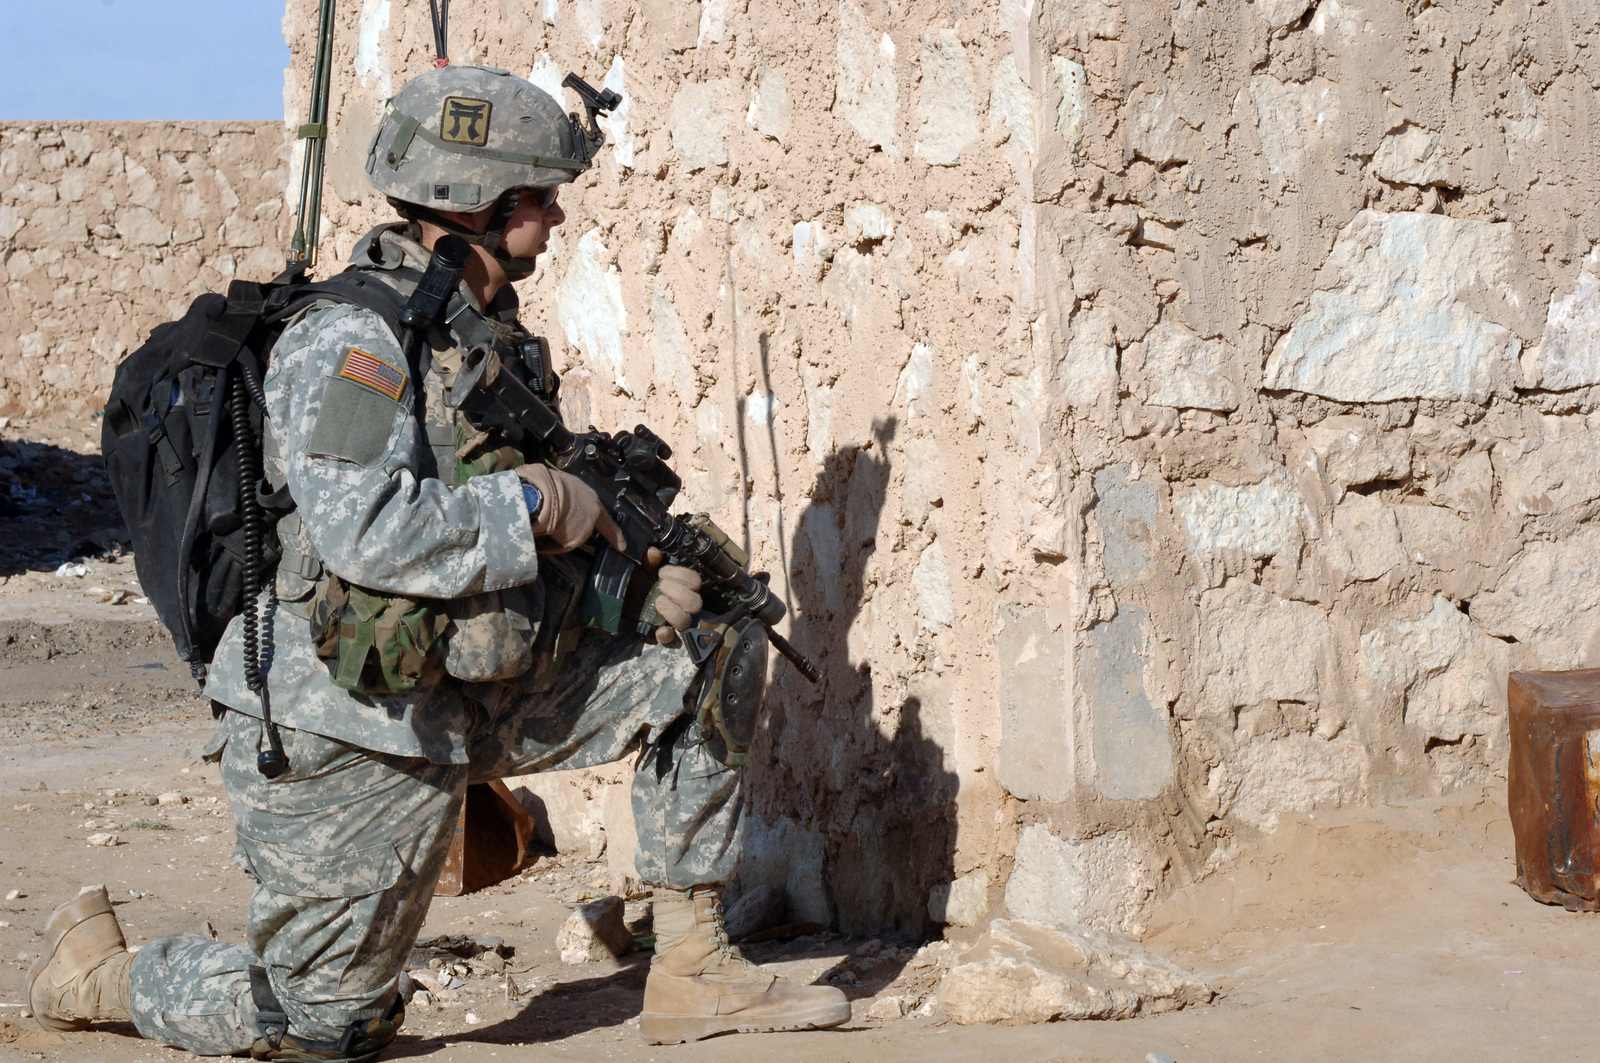 A Soldier Of 1ST Platoon C Company Battalion 187th Infantry Regiment 101st Airbourne Division Takes Knee To Provide Security During Dismounted